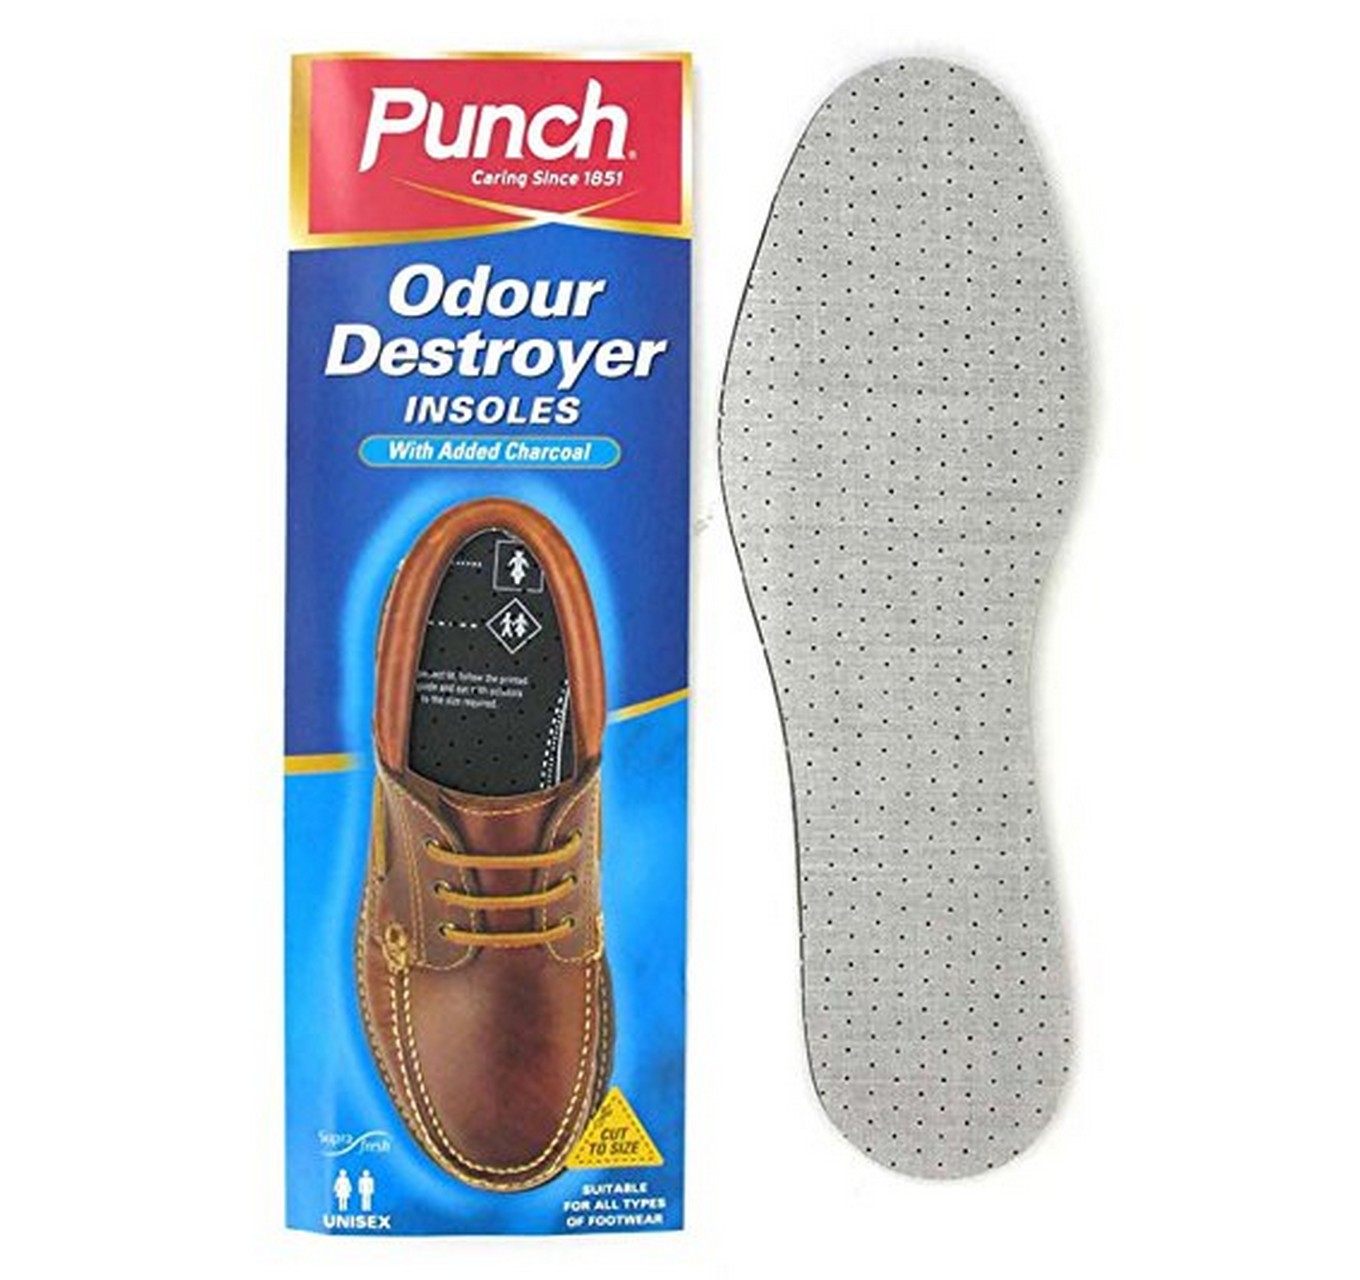 Odour Destroyer Insoles